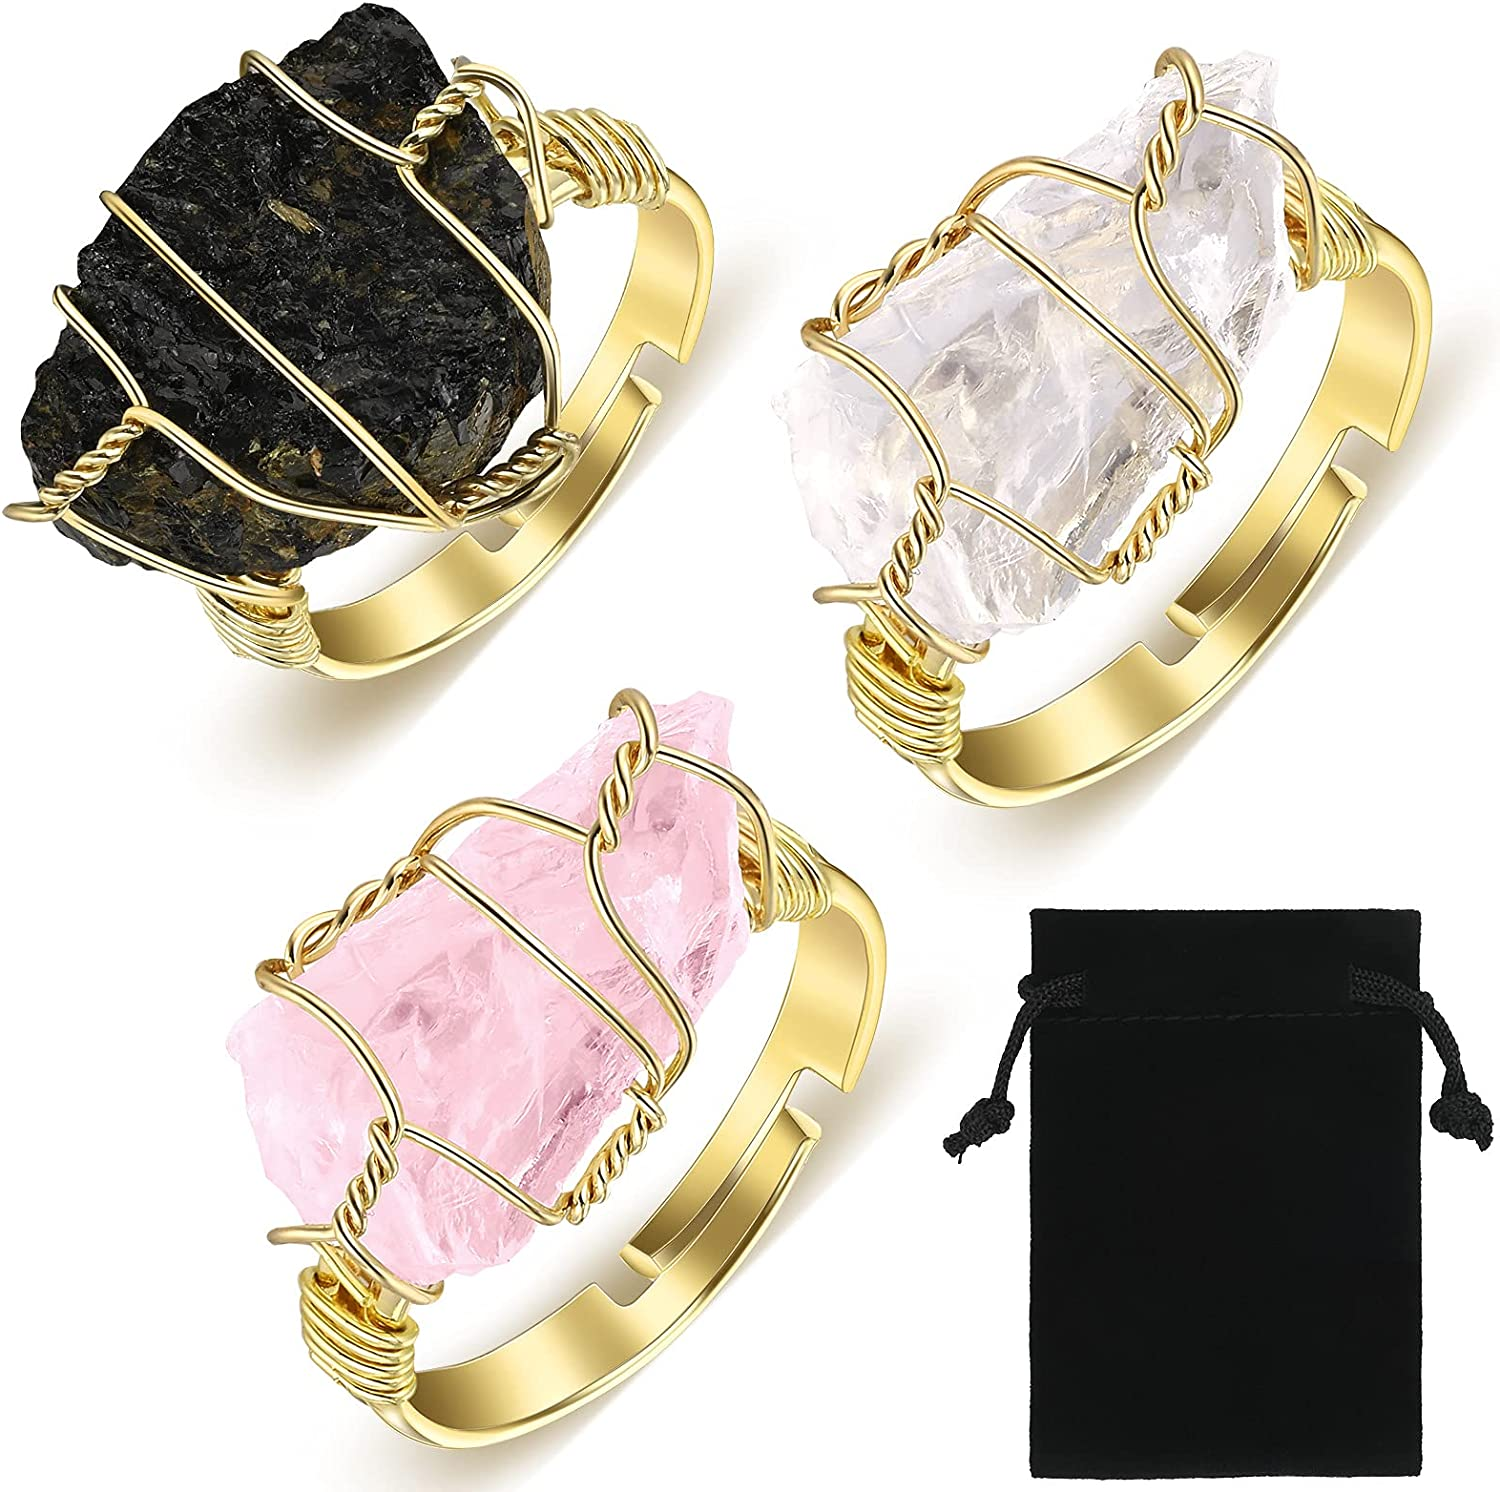 3 Pieces Chakra Crystal Ring Wire Wrapped Irregular Crystal Ring Raw Healing Crystal Ring Adjustable Gemstone Stone Ring Jewelry with Exquisite Flannel Bag for Women Girls